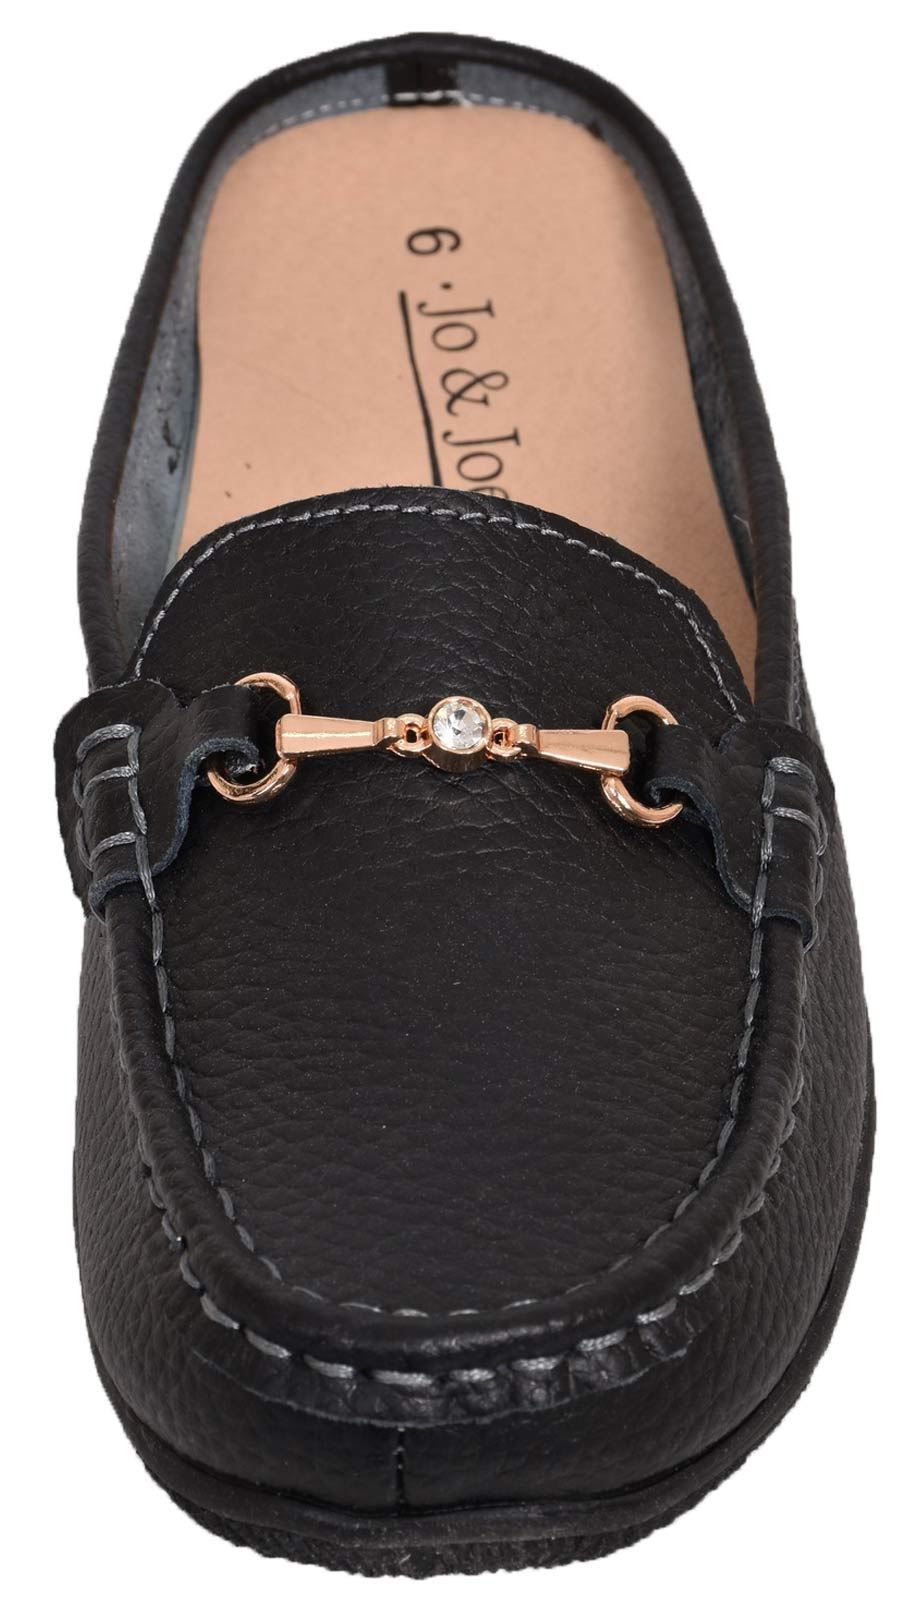 Ladies-Leather-Loafer-Mules-Comfort-Shoes-Womens-Slider-Moccasins-Shoes thumbnail 16